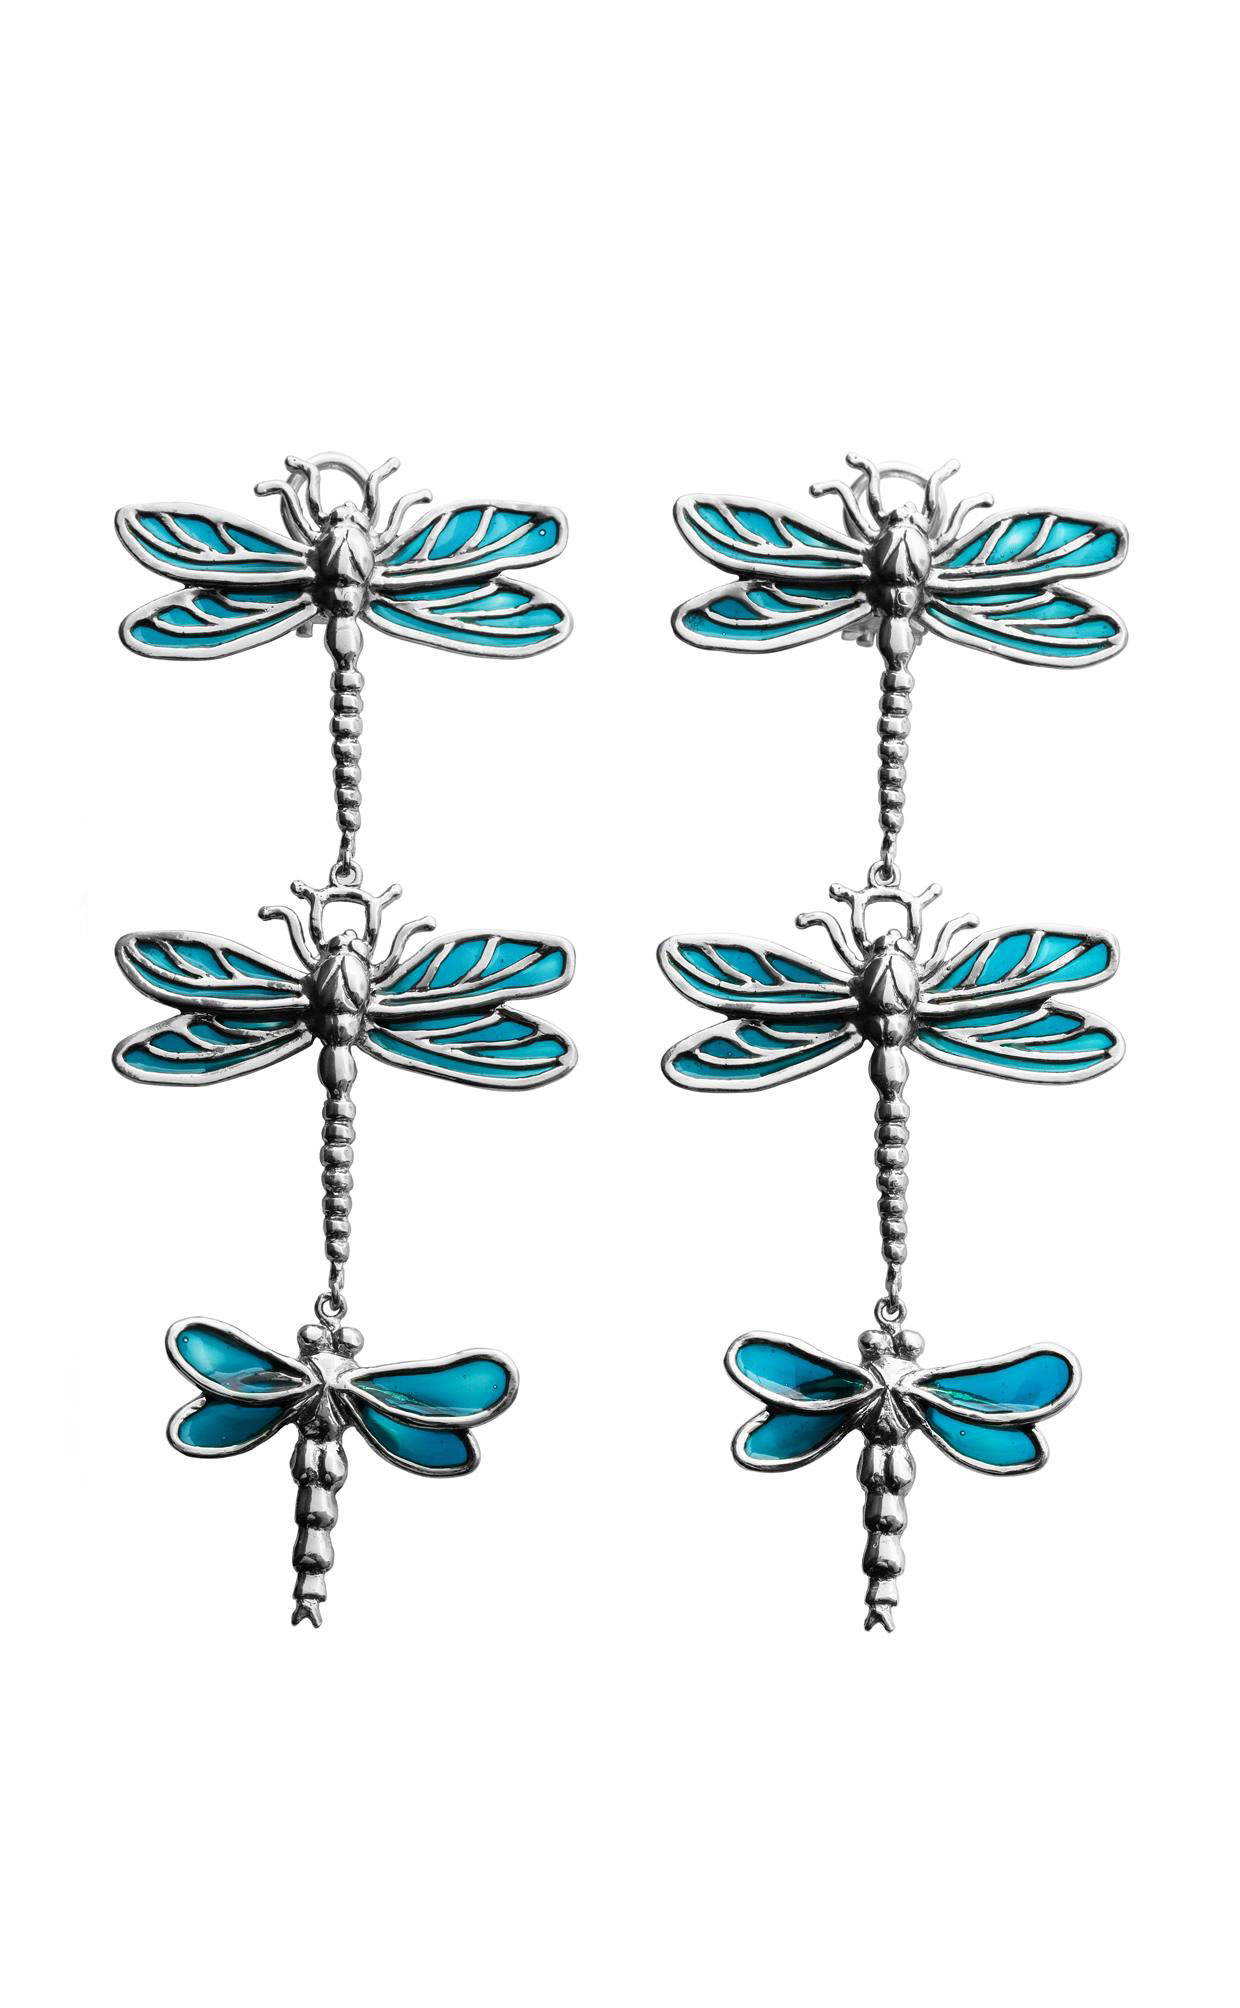 3 big dragonflies silver earrings with light blue enamel